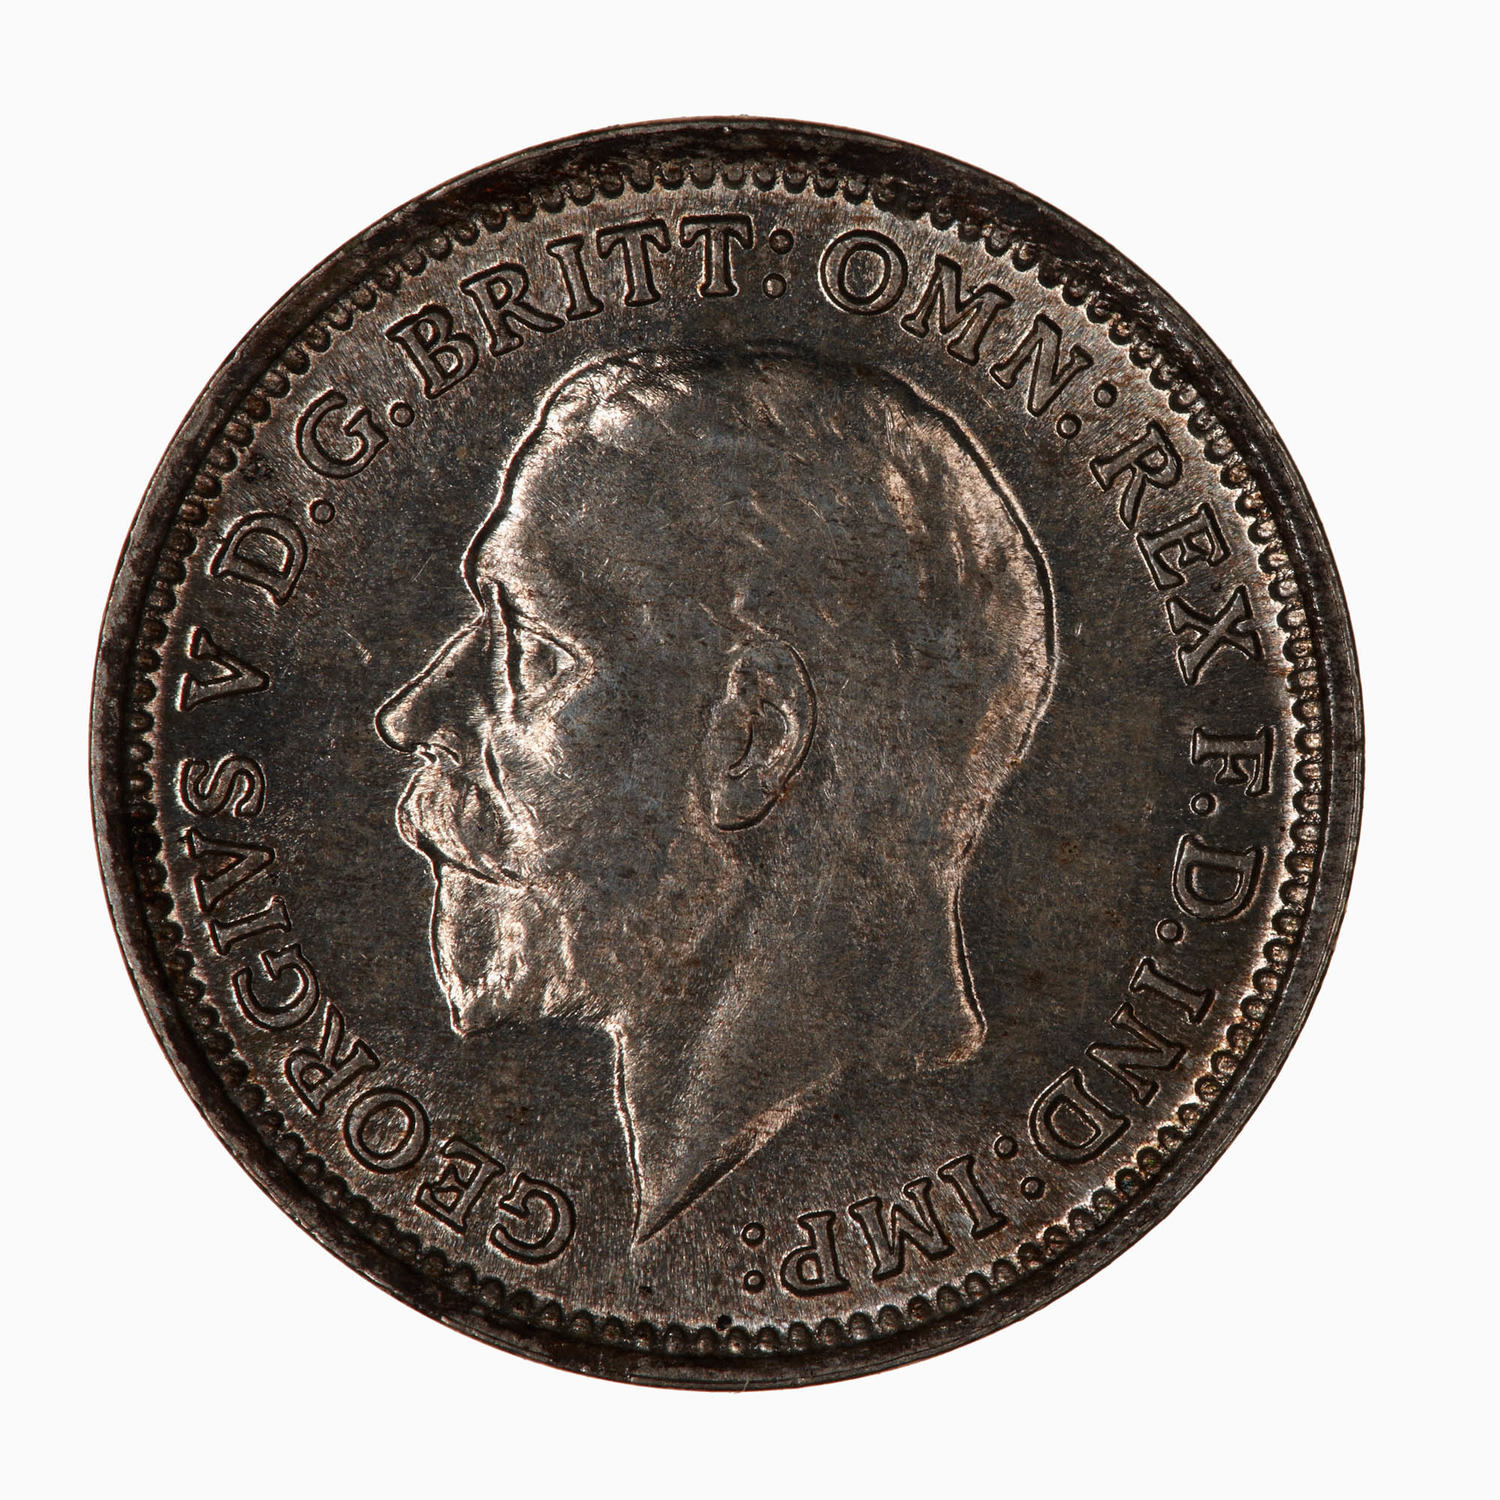 Threepence (Circulating): Photo Coin - Threepence, George V, Great Britain, 1928